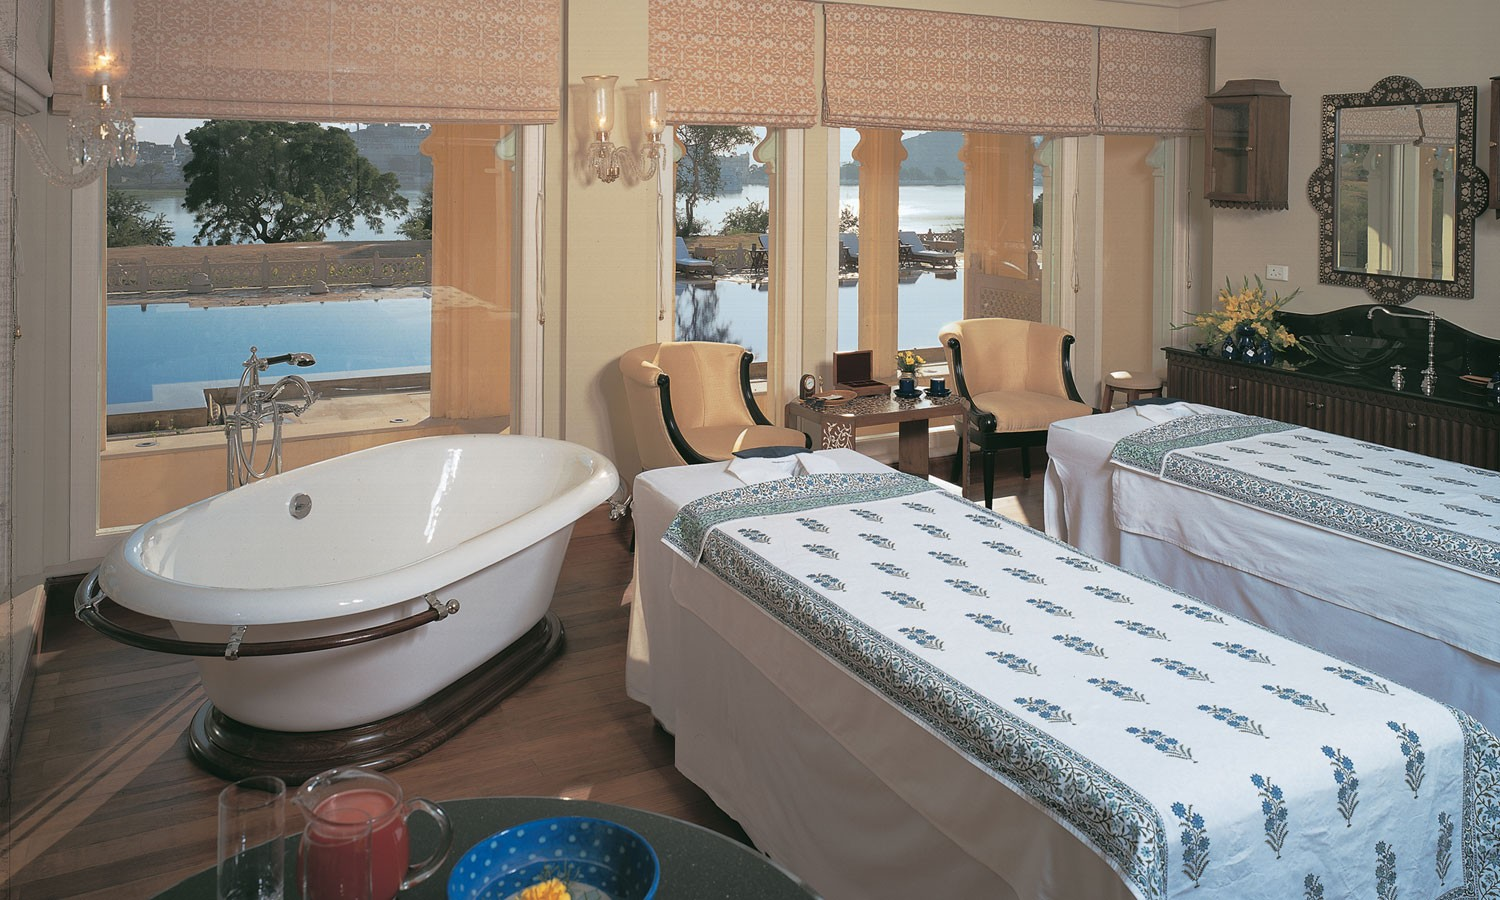 Suite Spa, The Oberoi Udaivilas, Udaipur